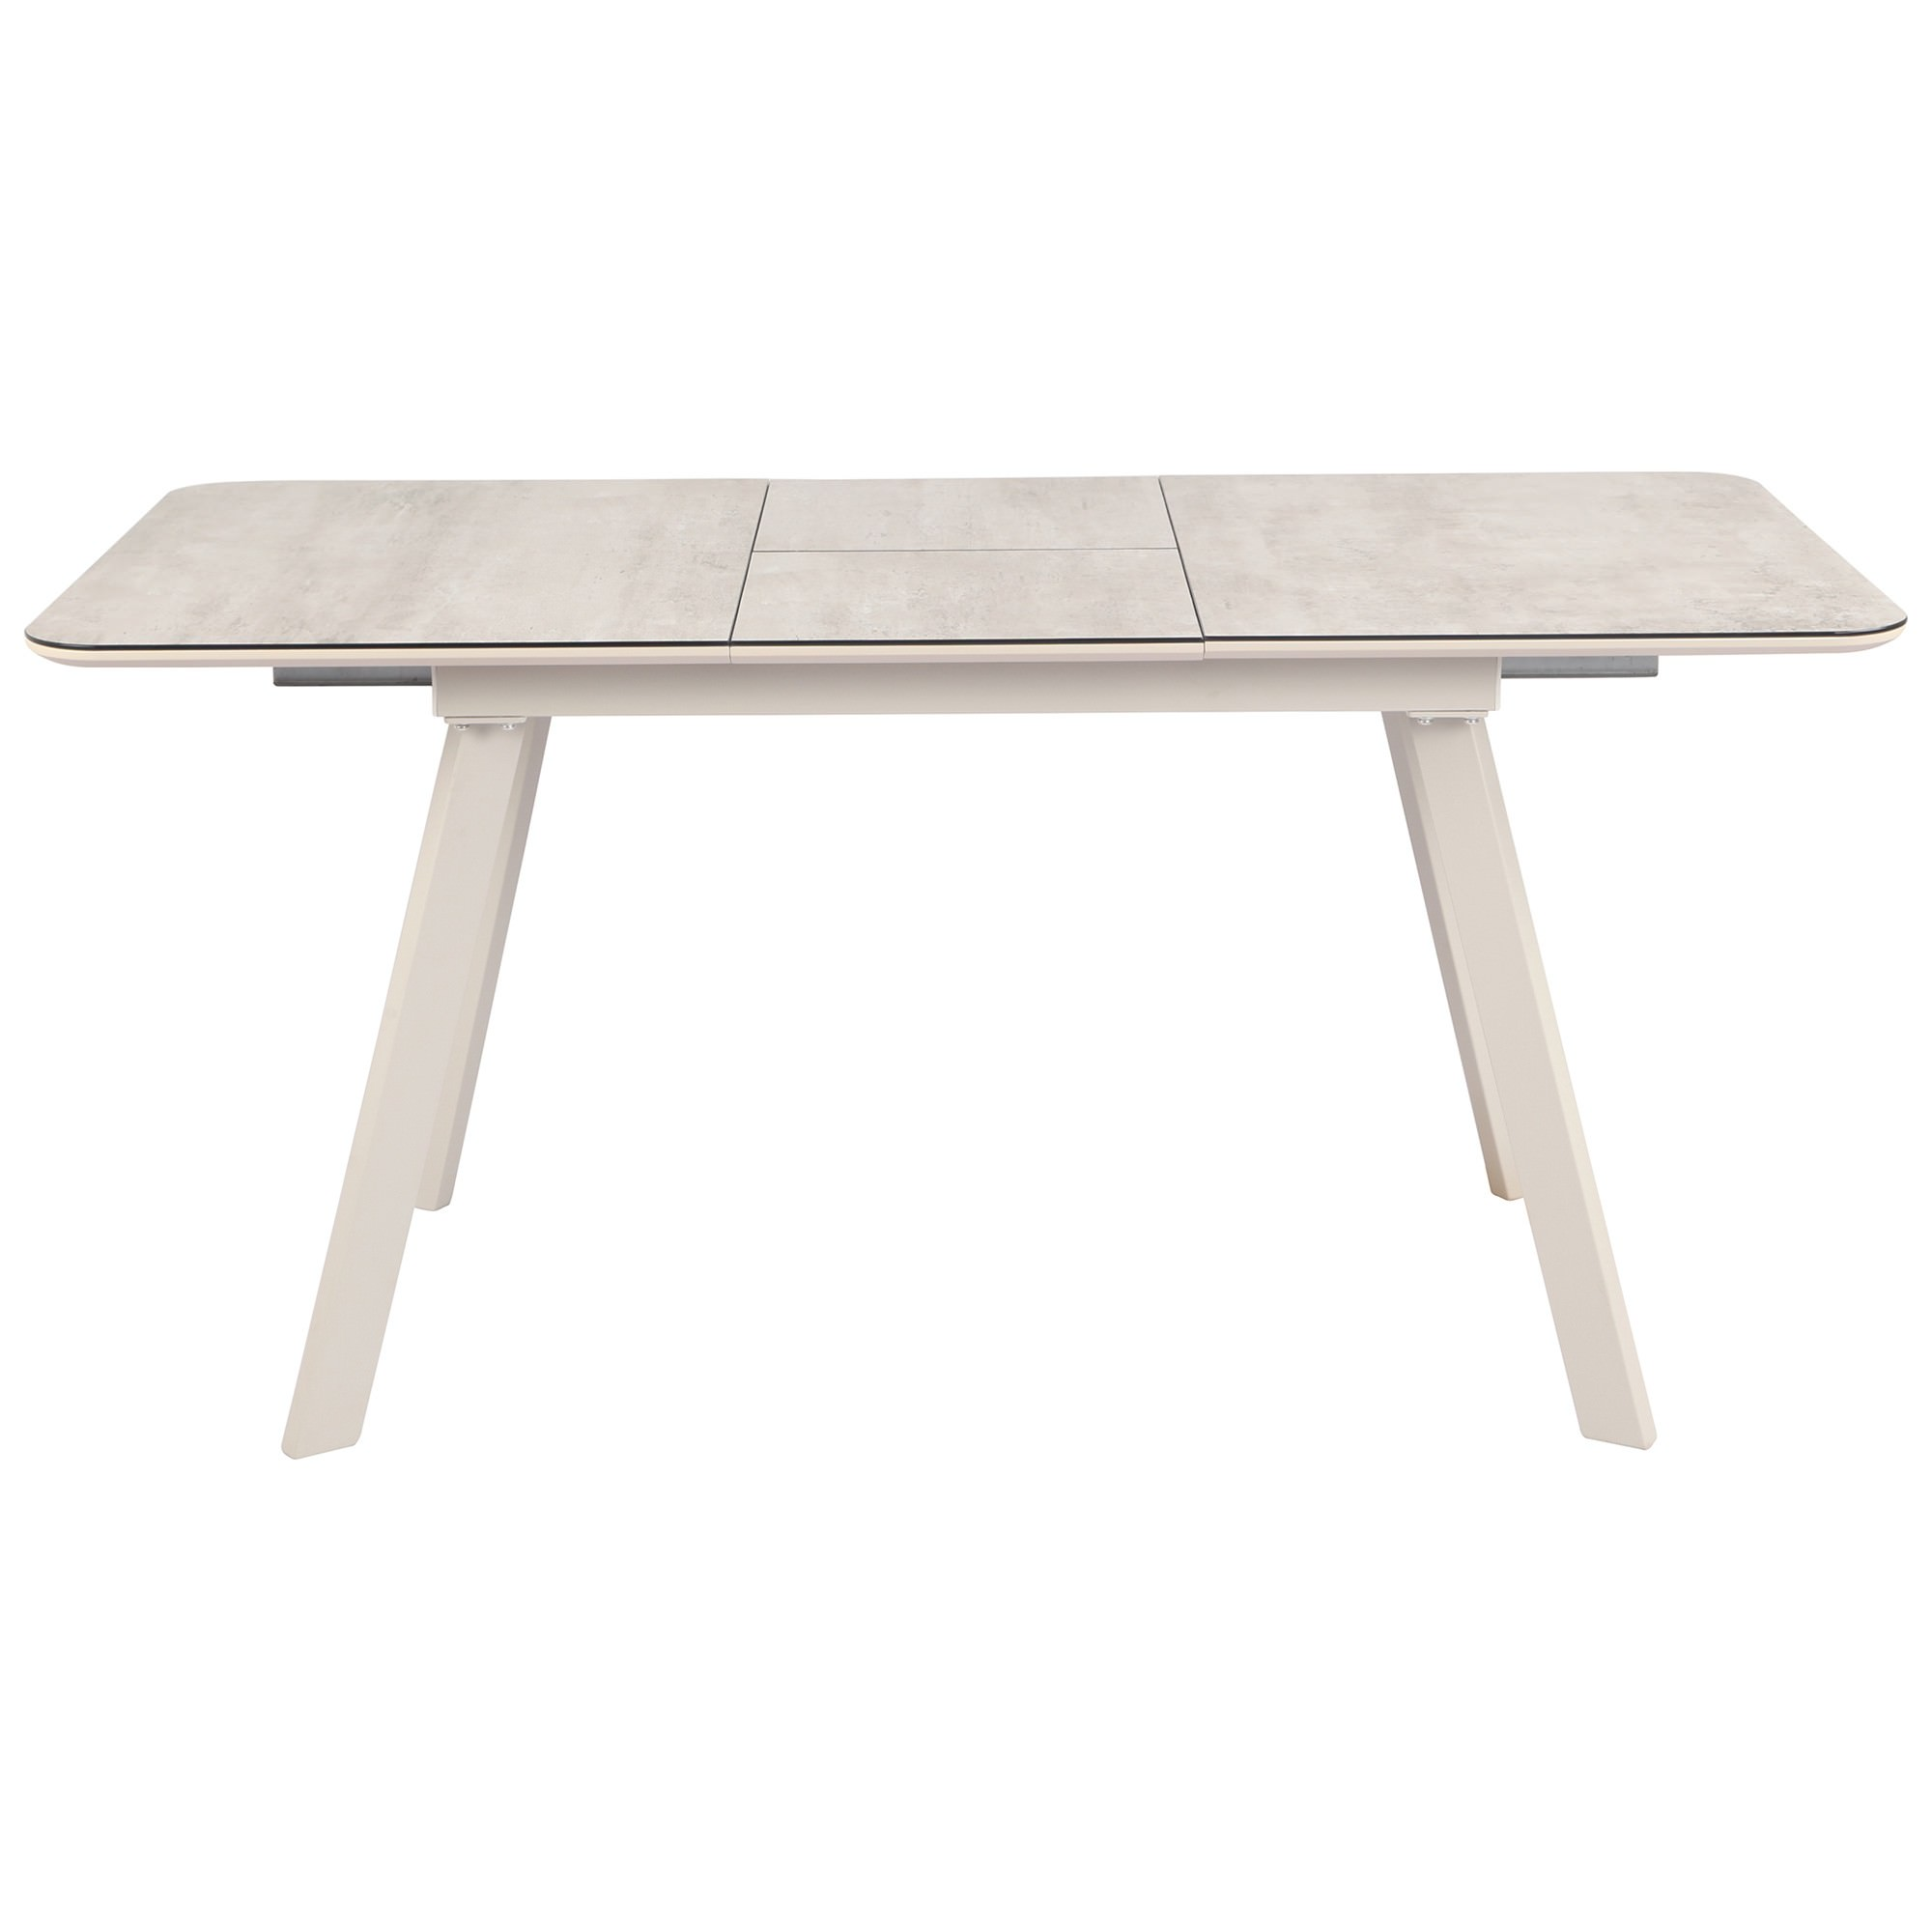 Balea Glass Top Extendable Dining Table, 140-180cm, Taupe Agate